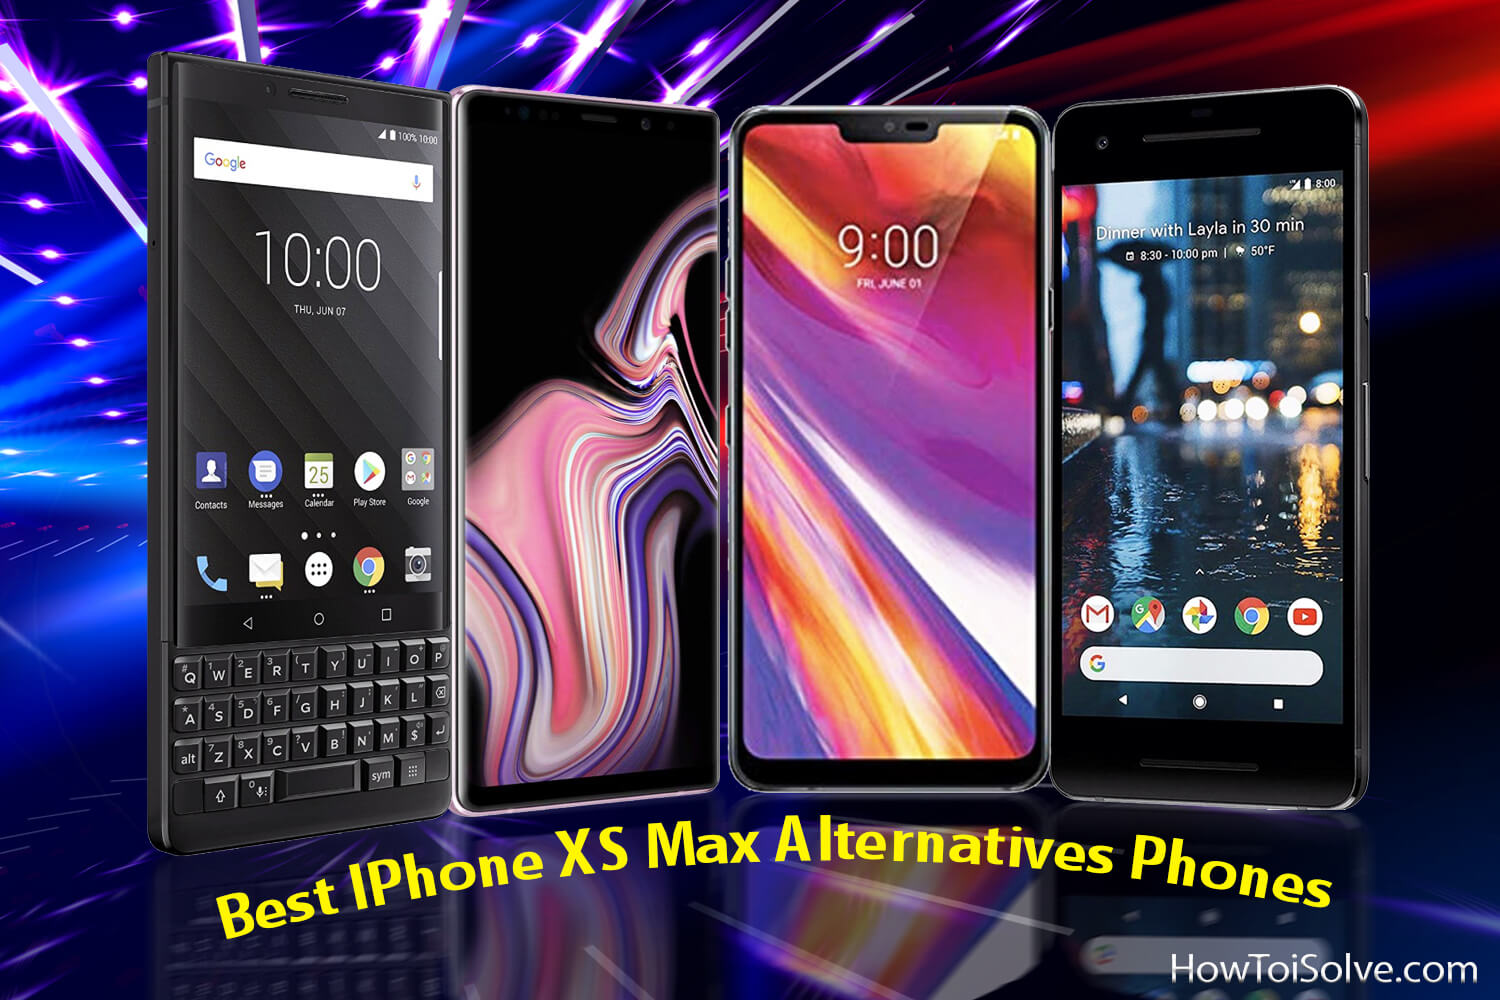 Best iPhone XS Max Alternatives Phones